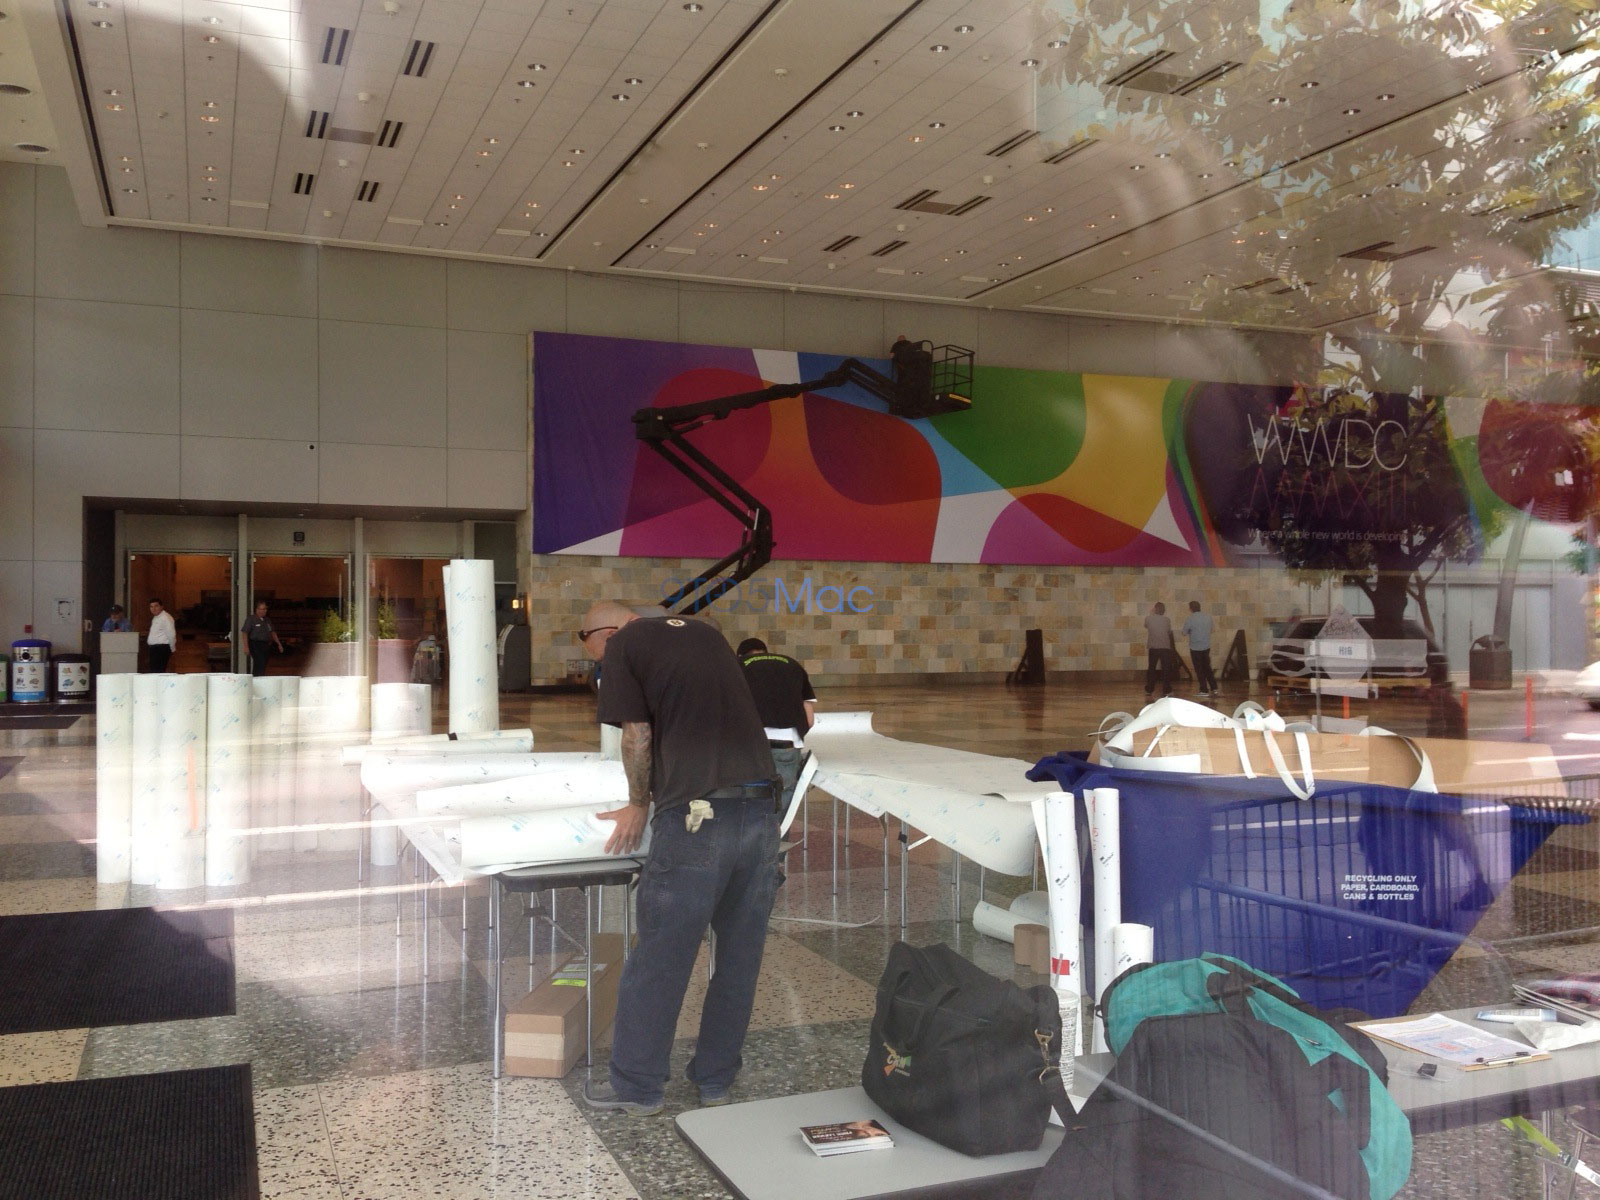 apple-starts-decorating-moscone-west-with-wwdc-2013-banners-2